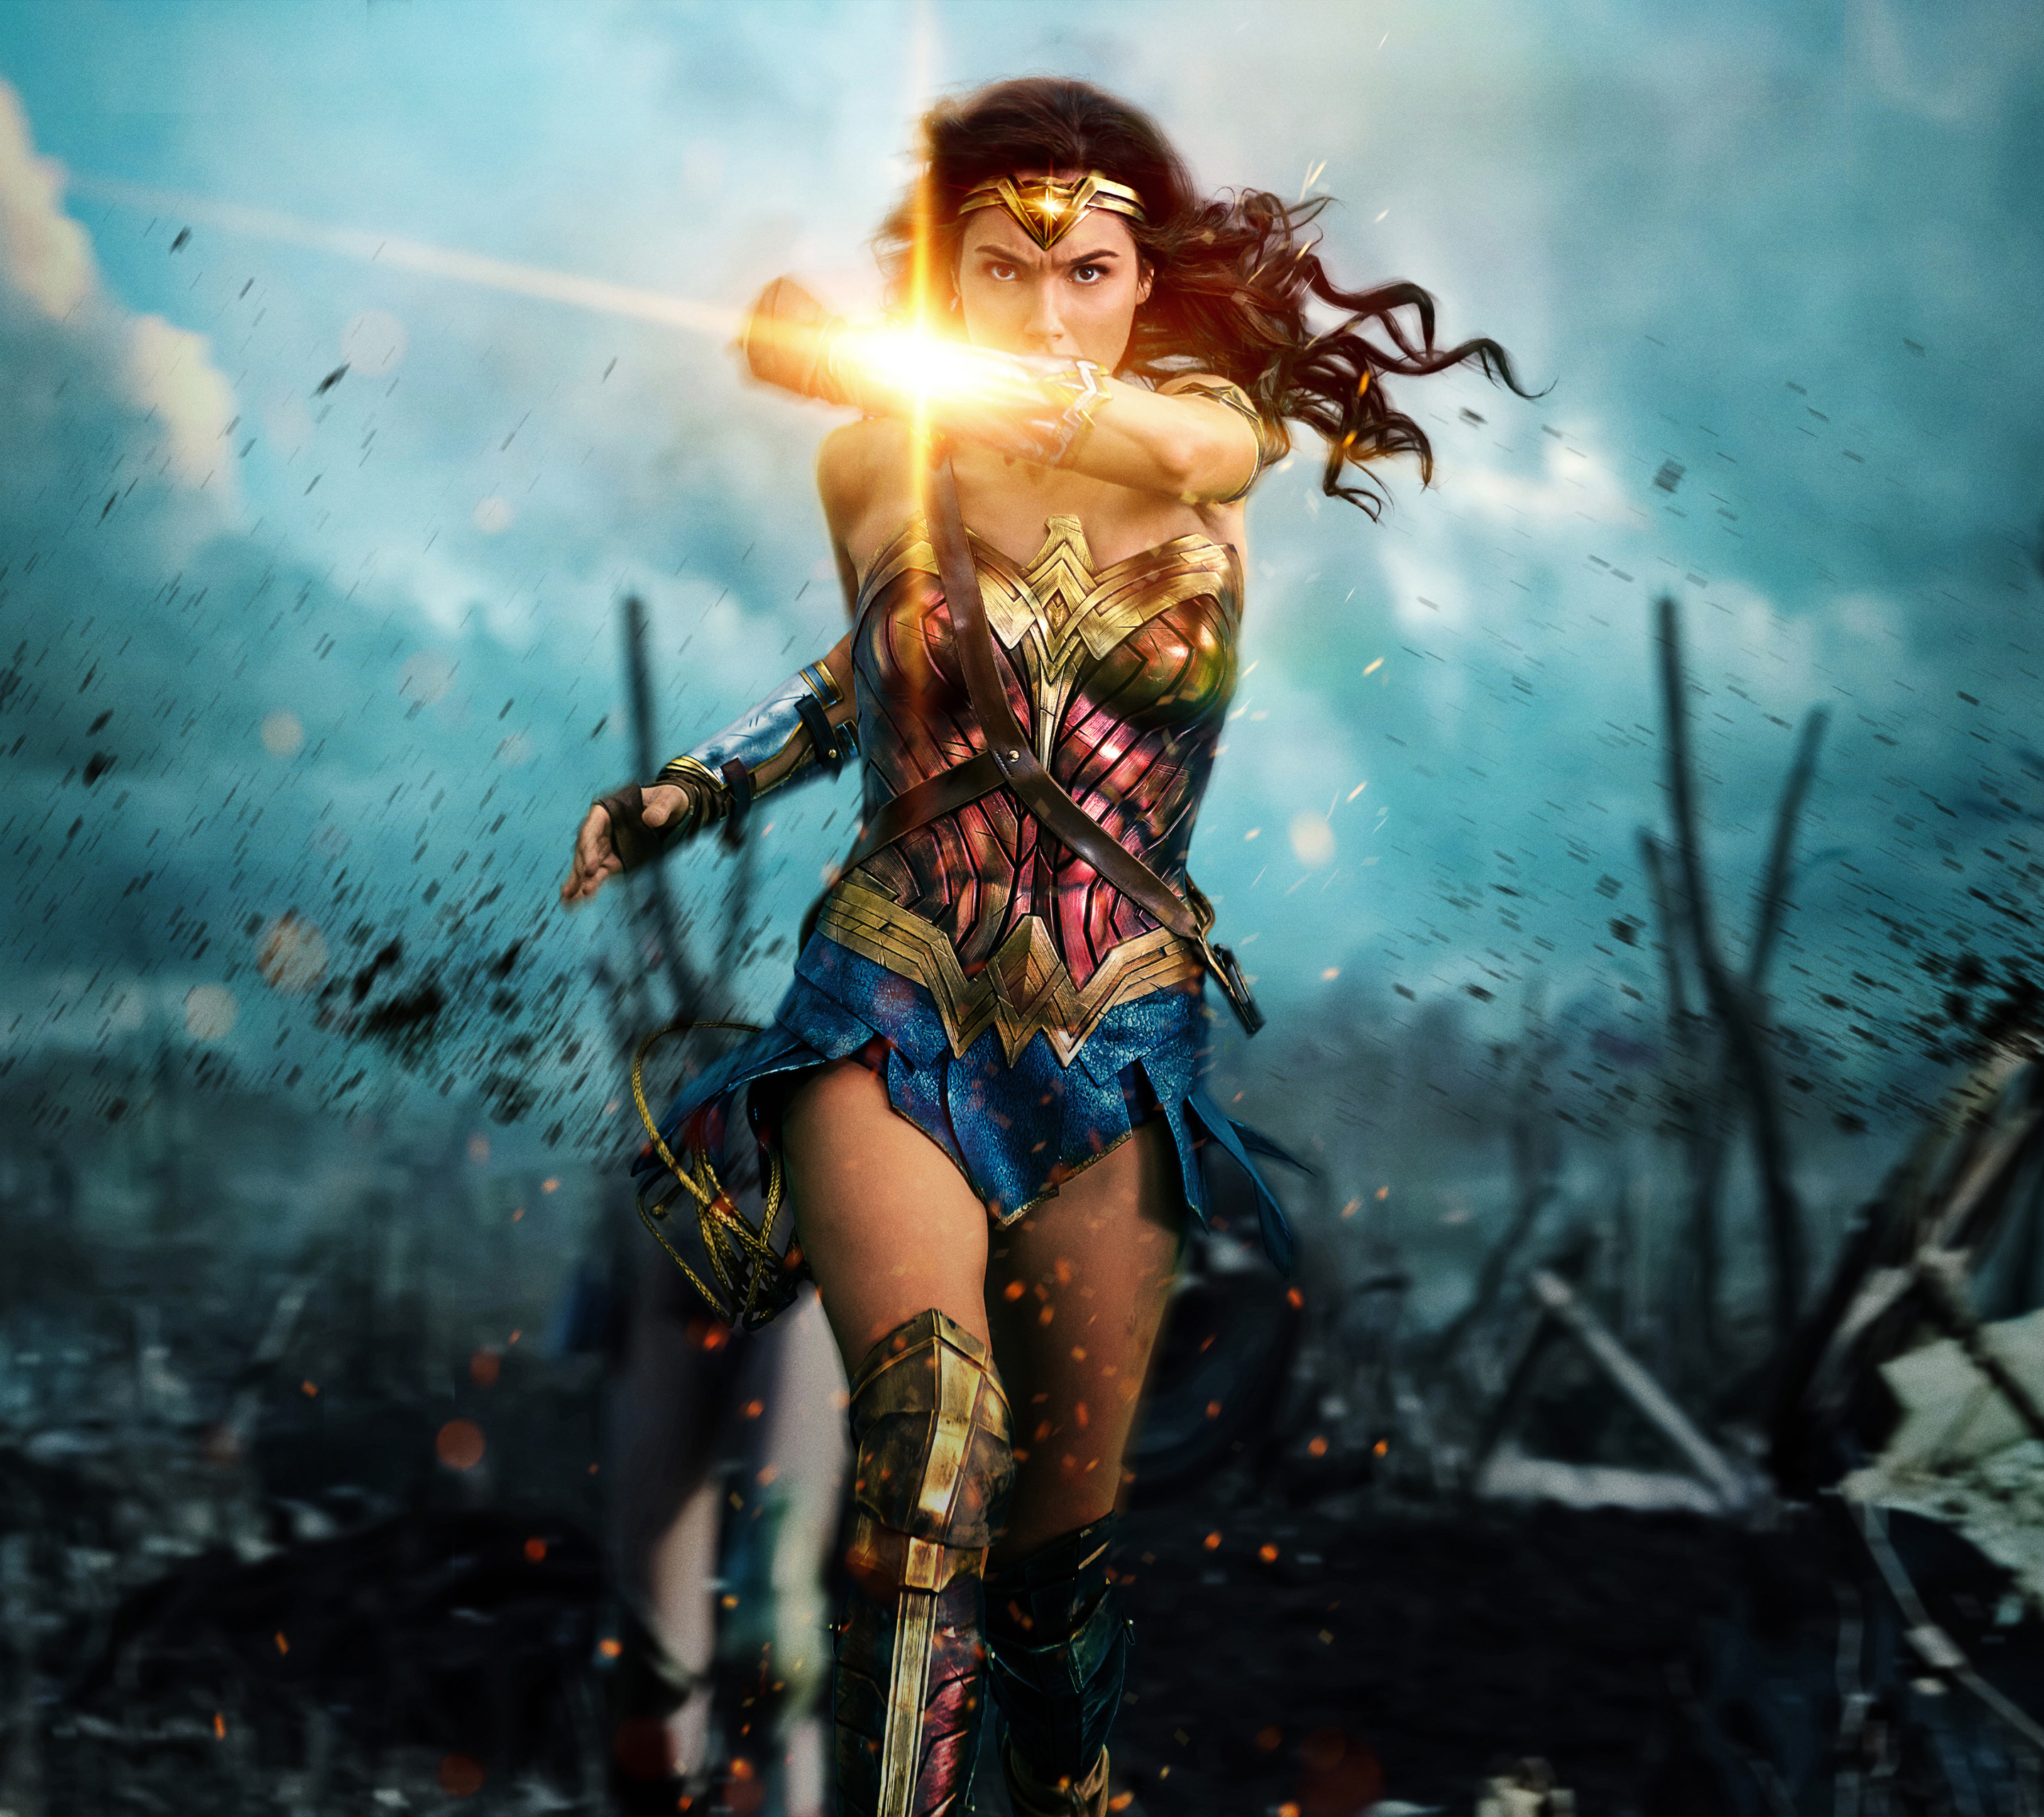 Xperia Z5 MovieWonder Woman Wallpaper ID 681616